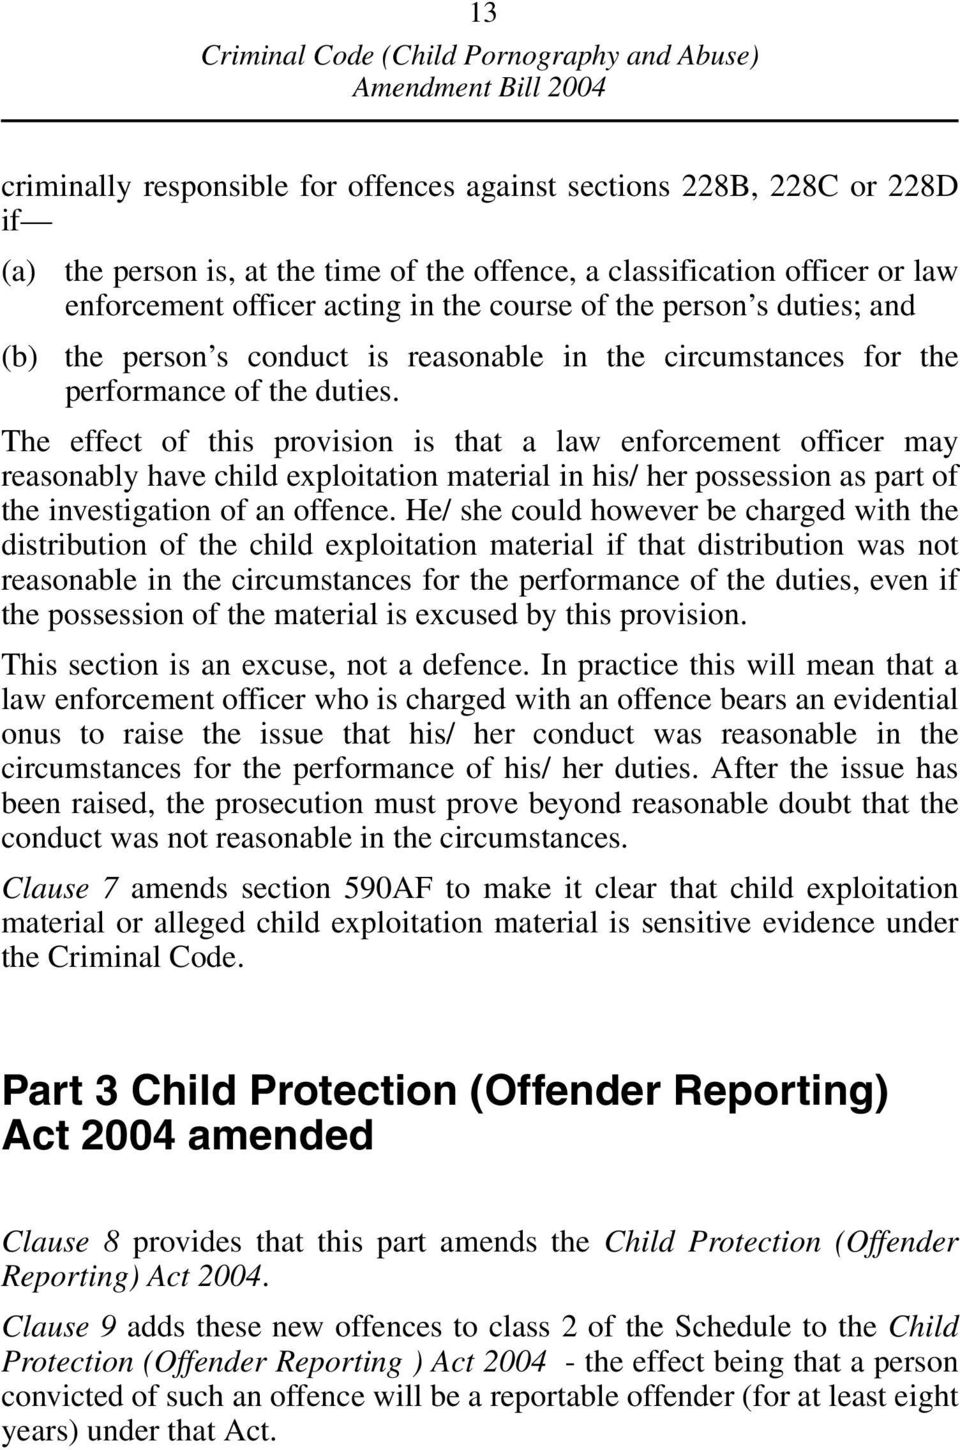 The effect of this provision is that a law enforcement officer may reasonably have child exploitation material in his/ her possession as part of the investigation of an offence.